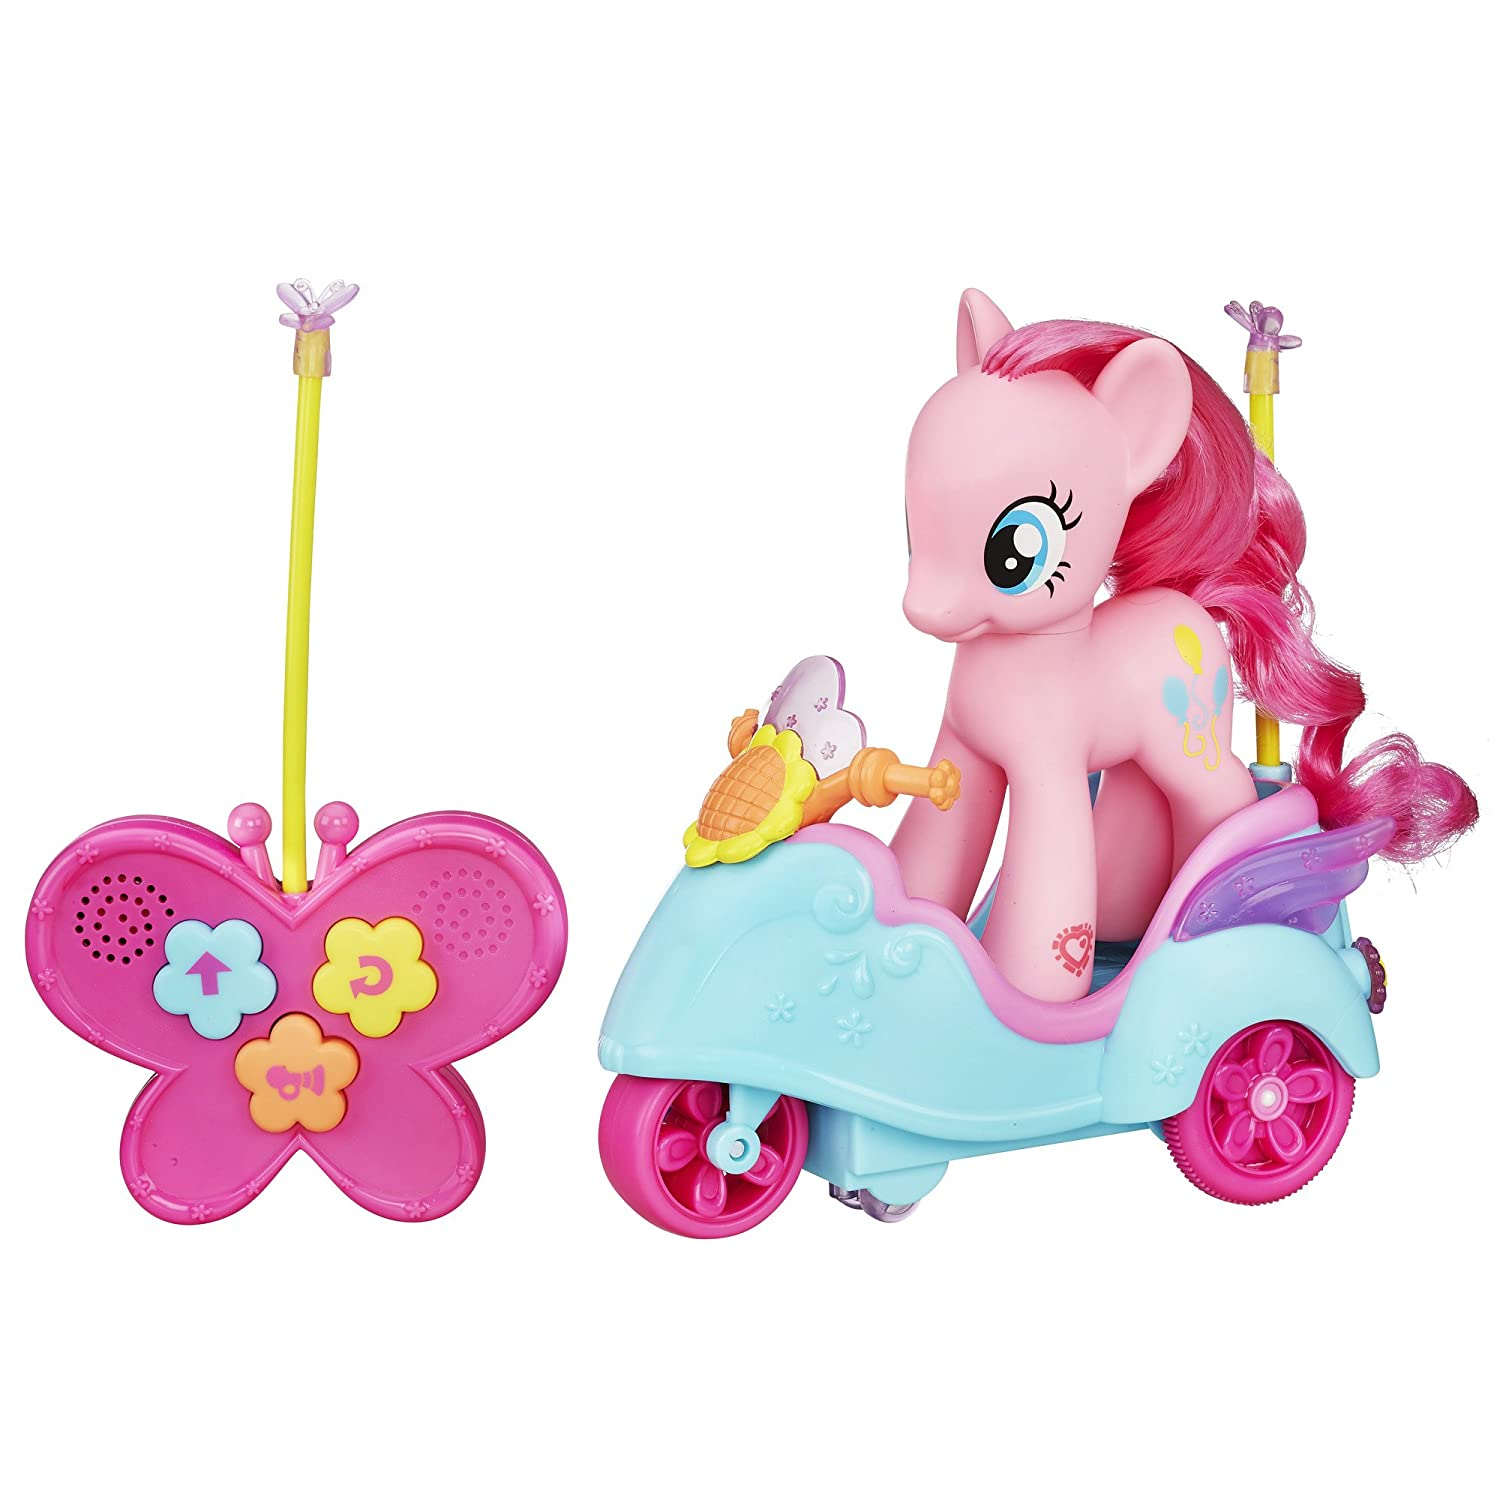 My Little Pony Toys : My little pony toys jaxslist